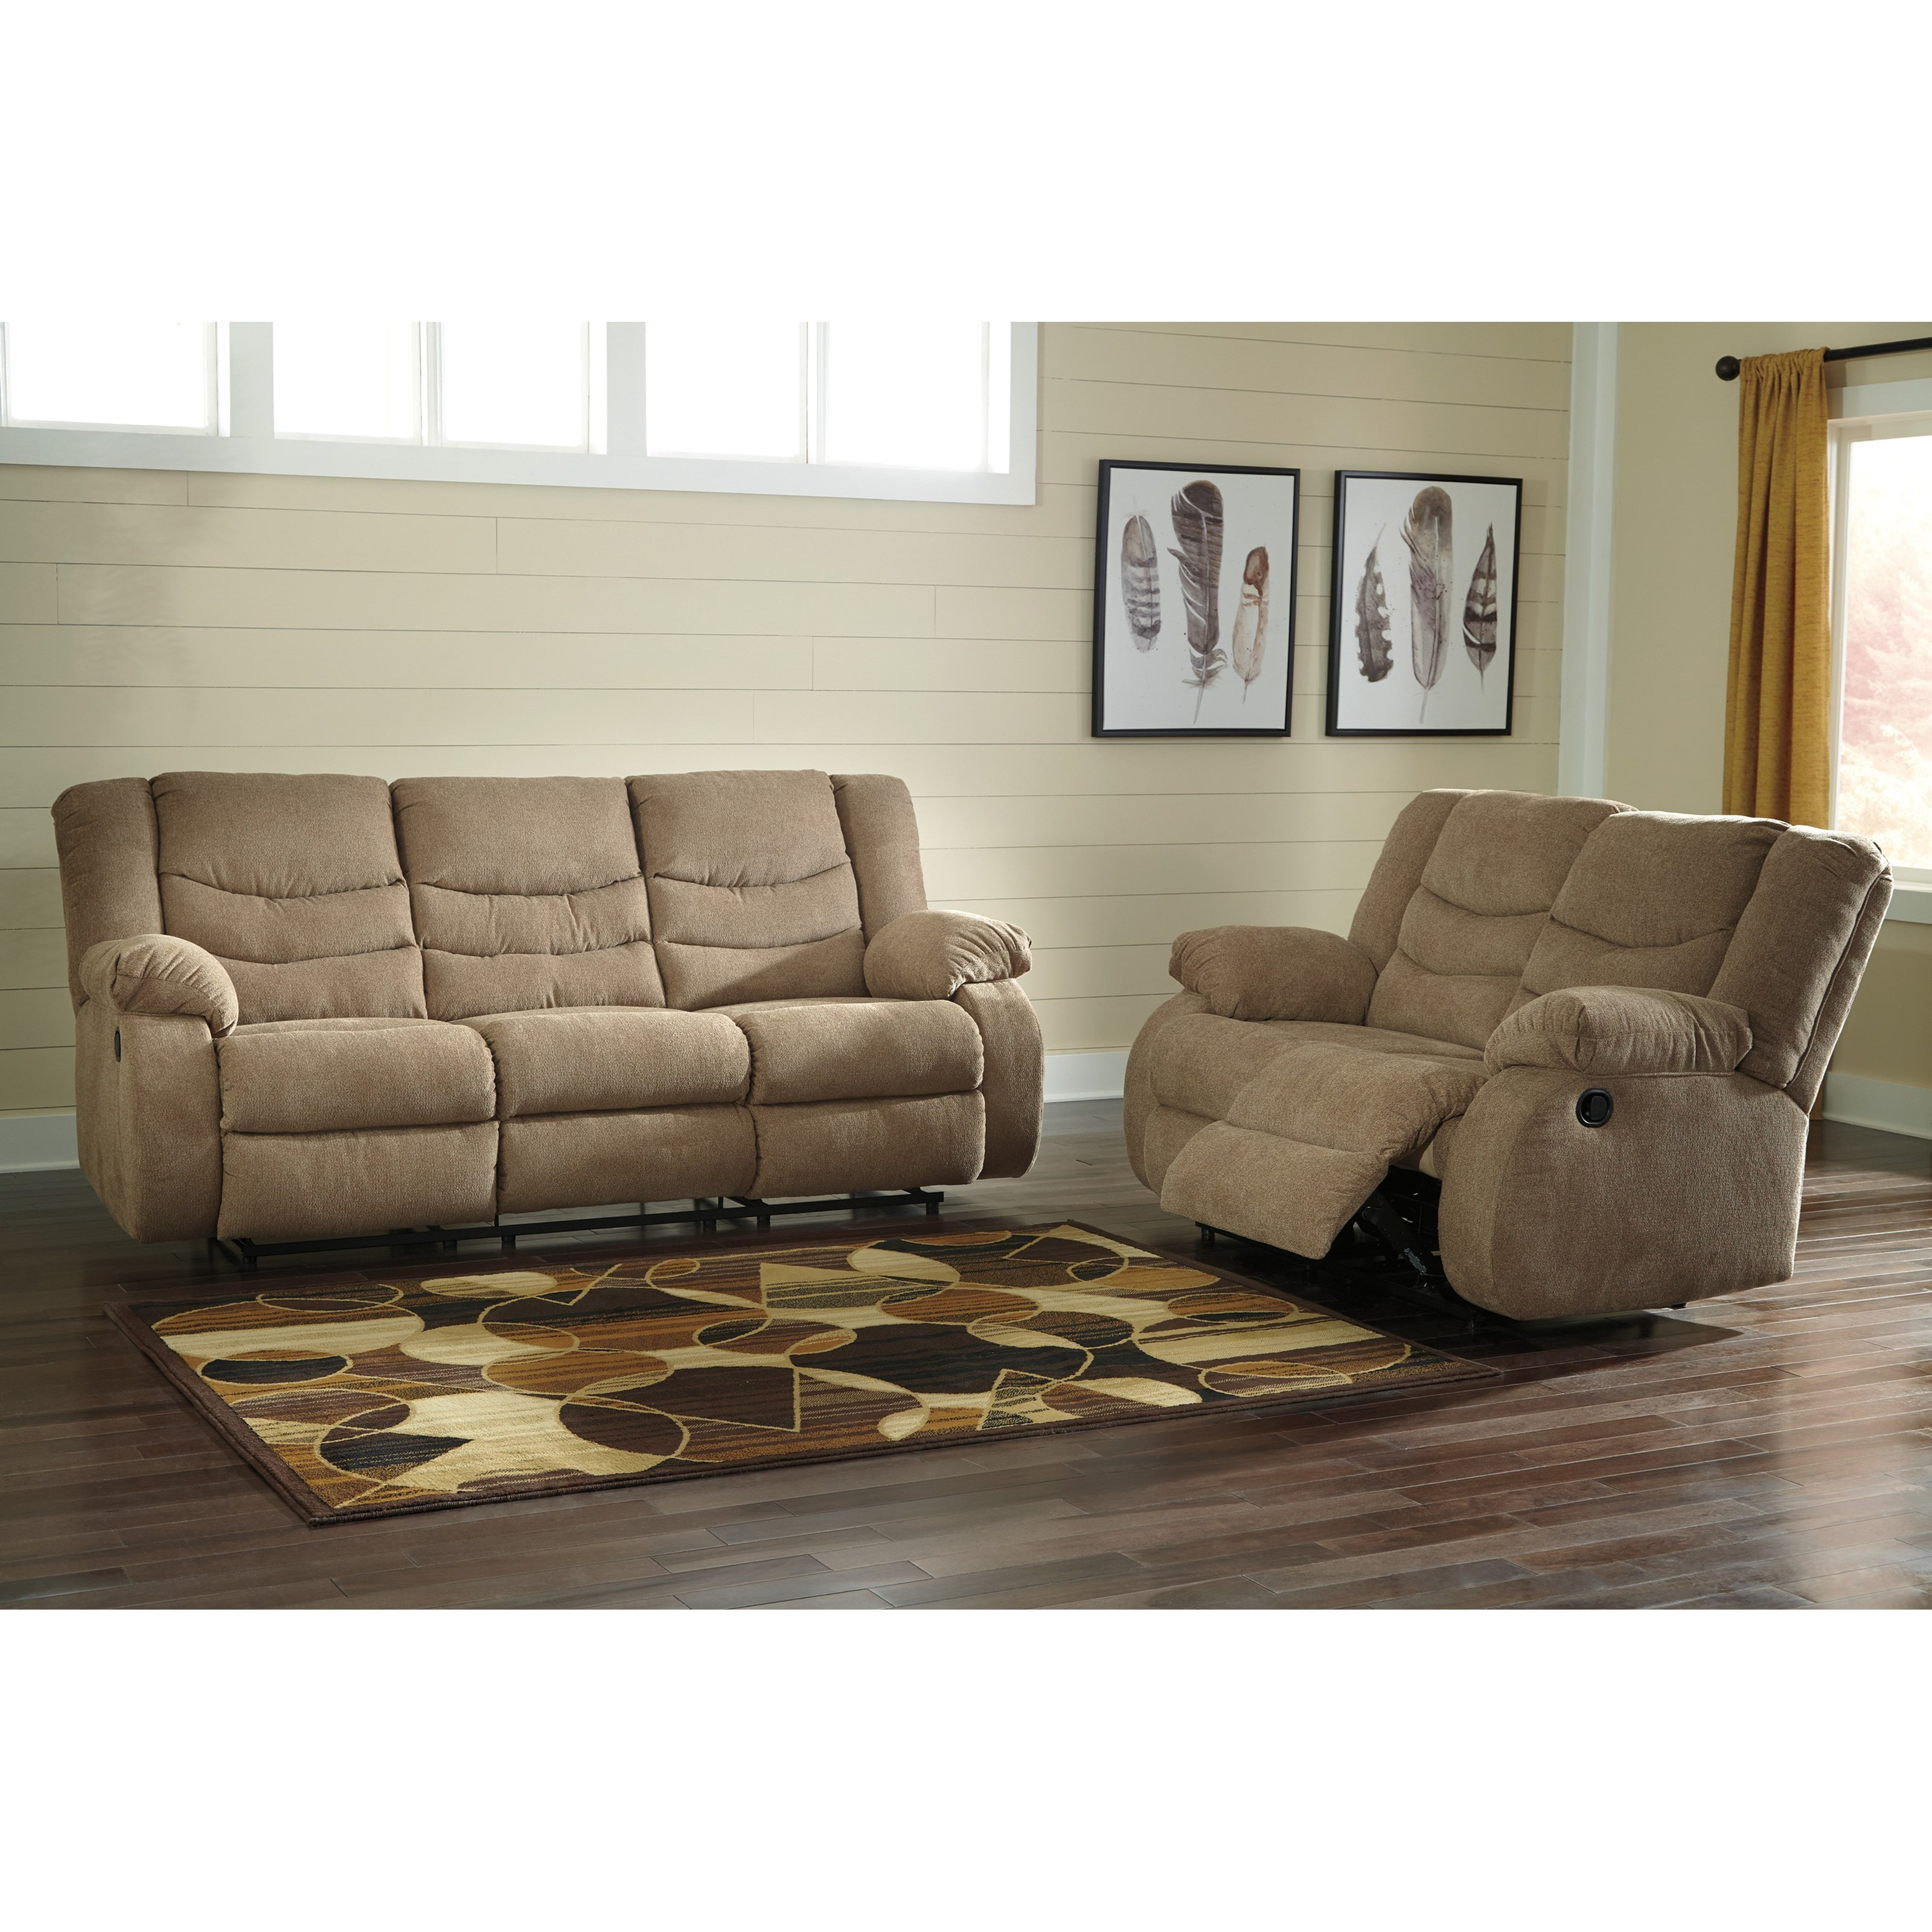 Tulen Reclining Living Room Group by Signature Design by Ashley at Sparks HomeStore